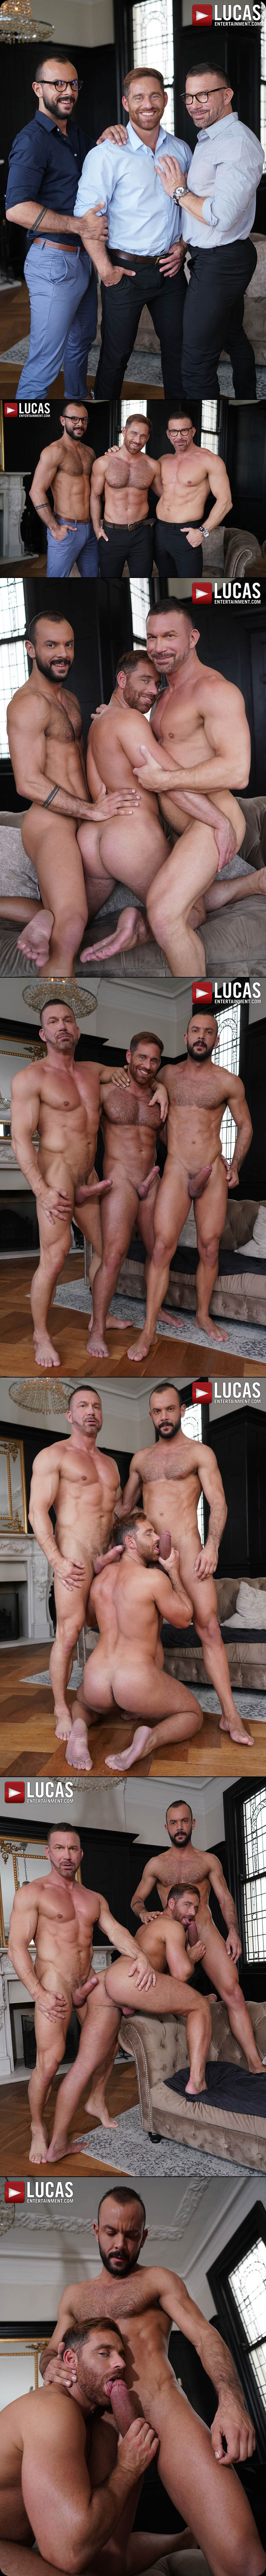 Bareback Auditions 13: New Faces, New Wood: Scene 3 (Tomas Brand And Sir Peter Double-Team Jonas Jackson) at LucasEntertainment